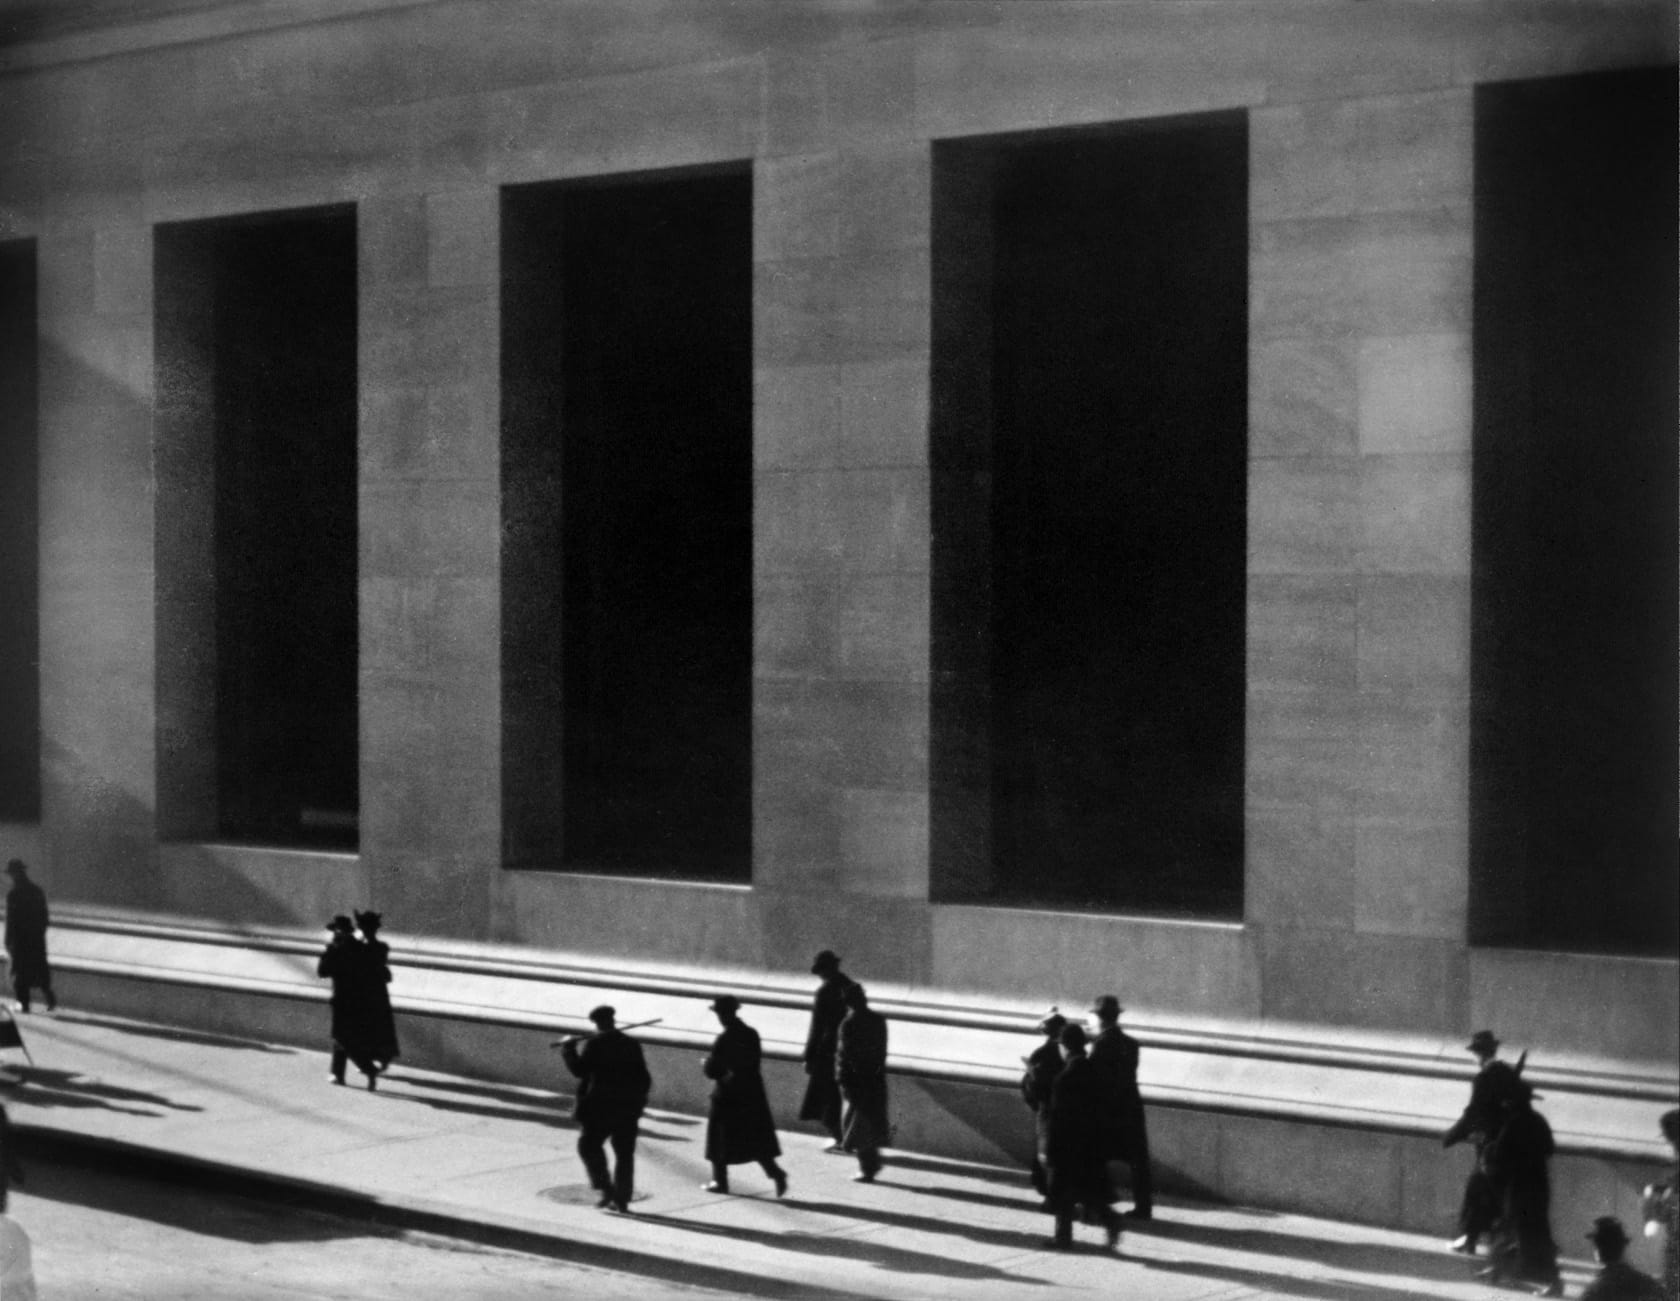 Wall Street by Paul Strand